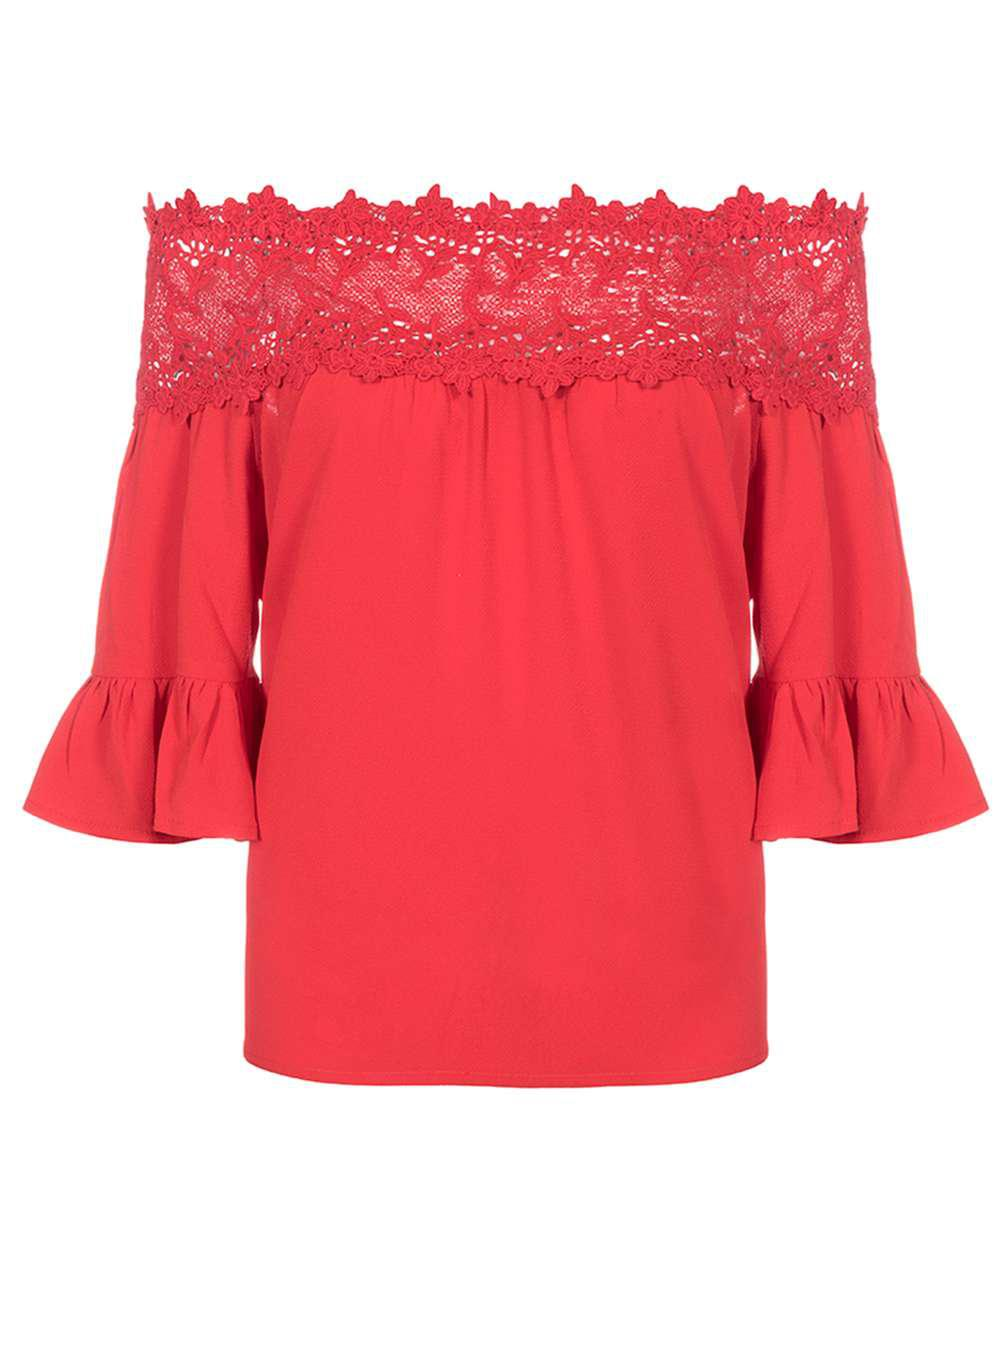 7df917688b3c3d Dorothy Perkins Quiz Red Crochet Trim Bardot Top in Red - Lyst